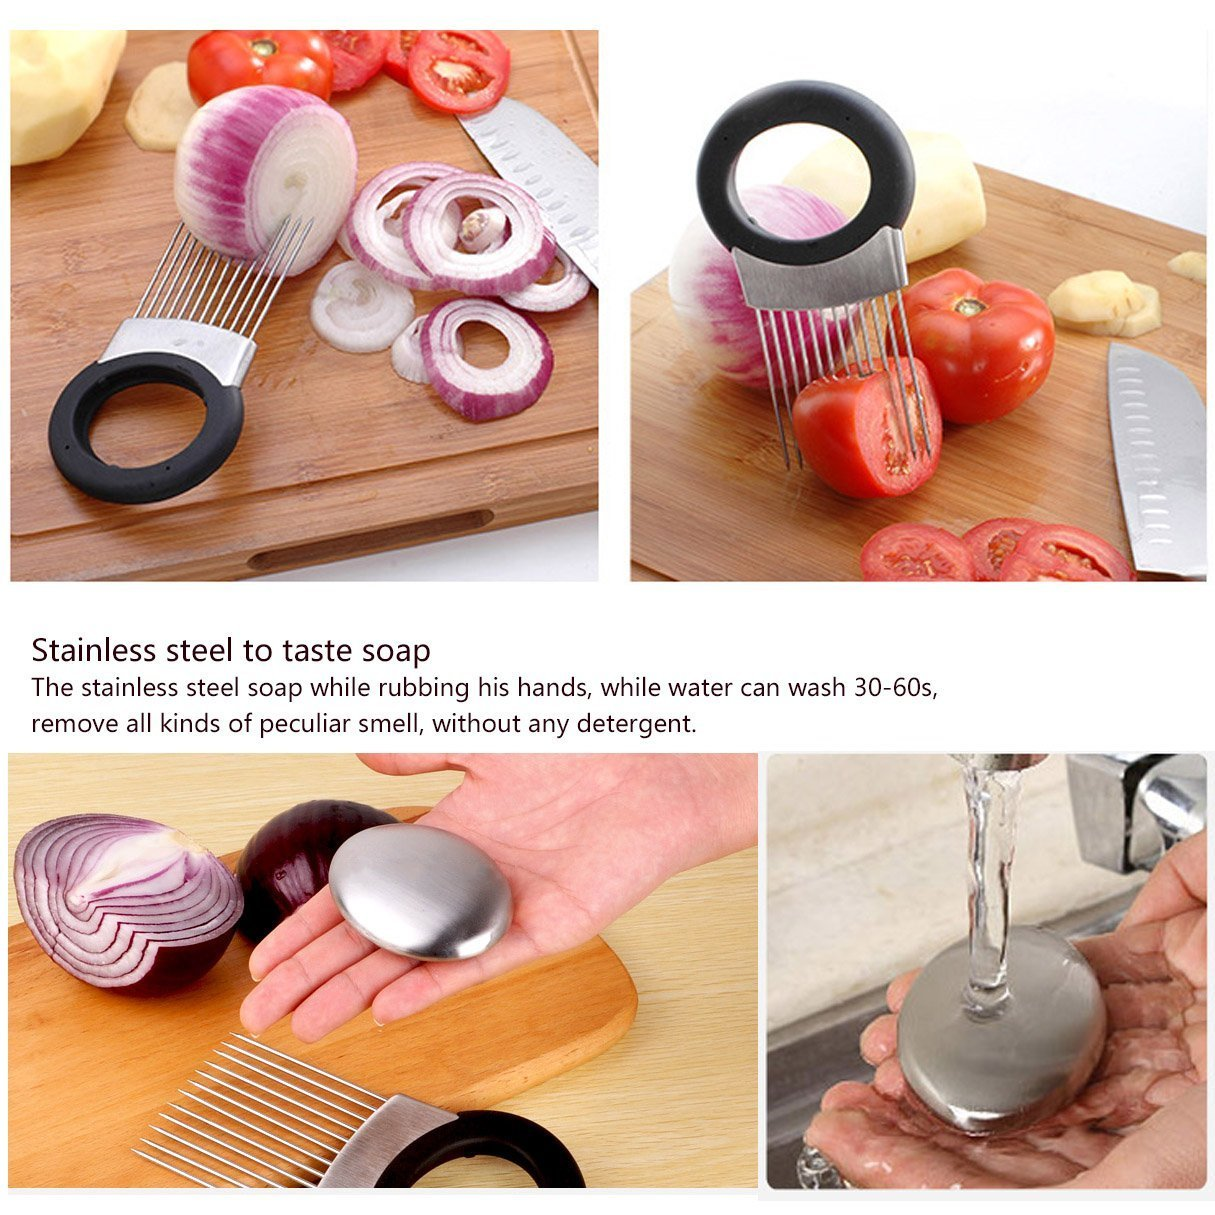 EVINIS Onion Holder Vegetable Potato Cutter Slicer Gadget Stainless Steel Fork Slicing Helper Kitchen Tool Aid Gadget Cutting Chopper,with Finger Guard Finger Protector by EVINIS (Image #9)